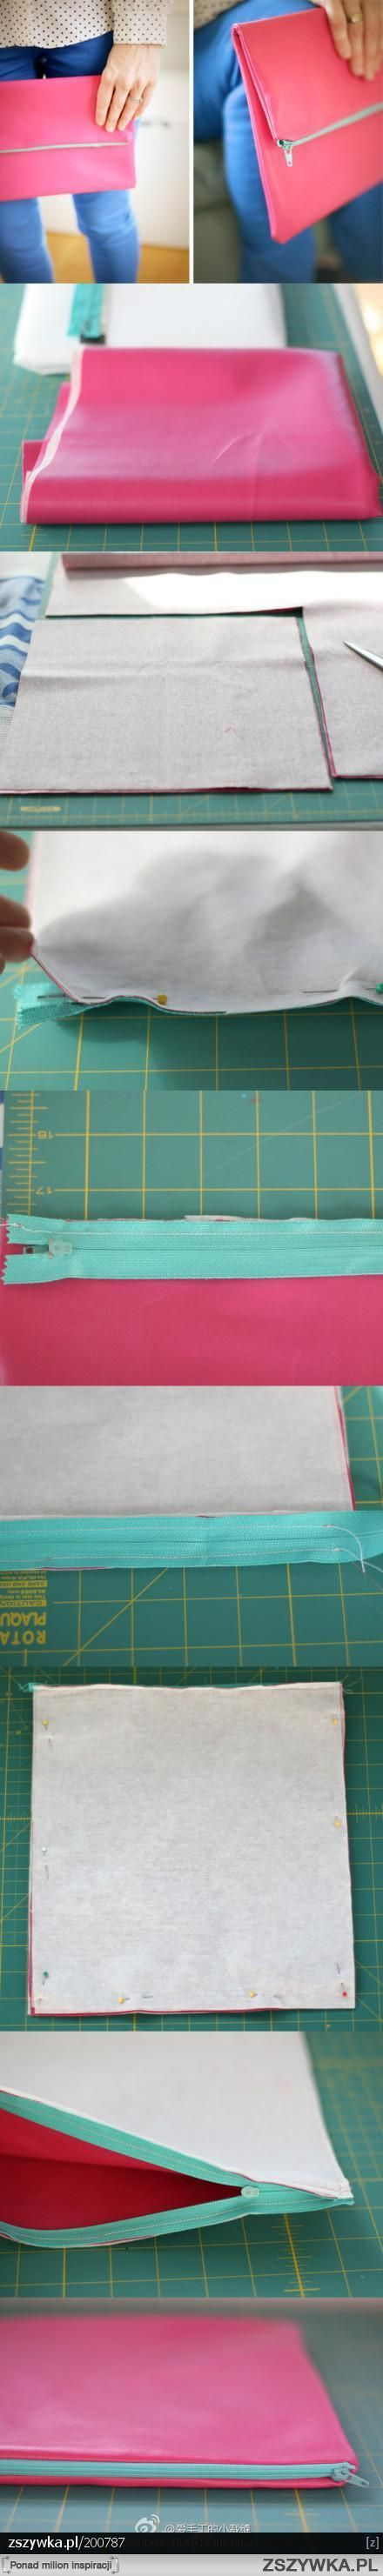 DIY Fashion. Make your own simple clutch with zipper. Im using this tutorial to make a sleeve for my iPad!